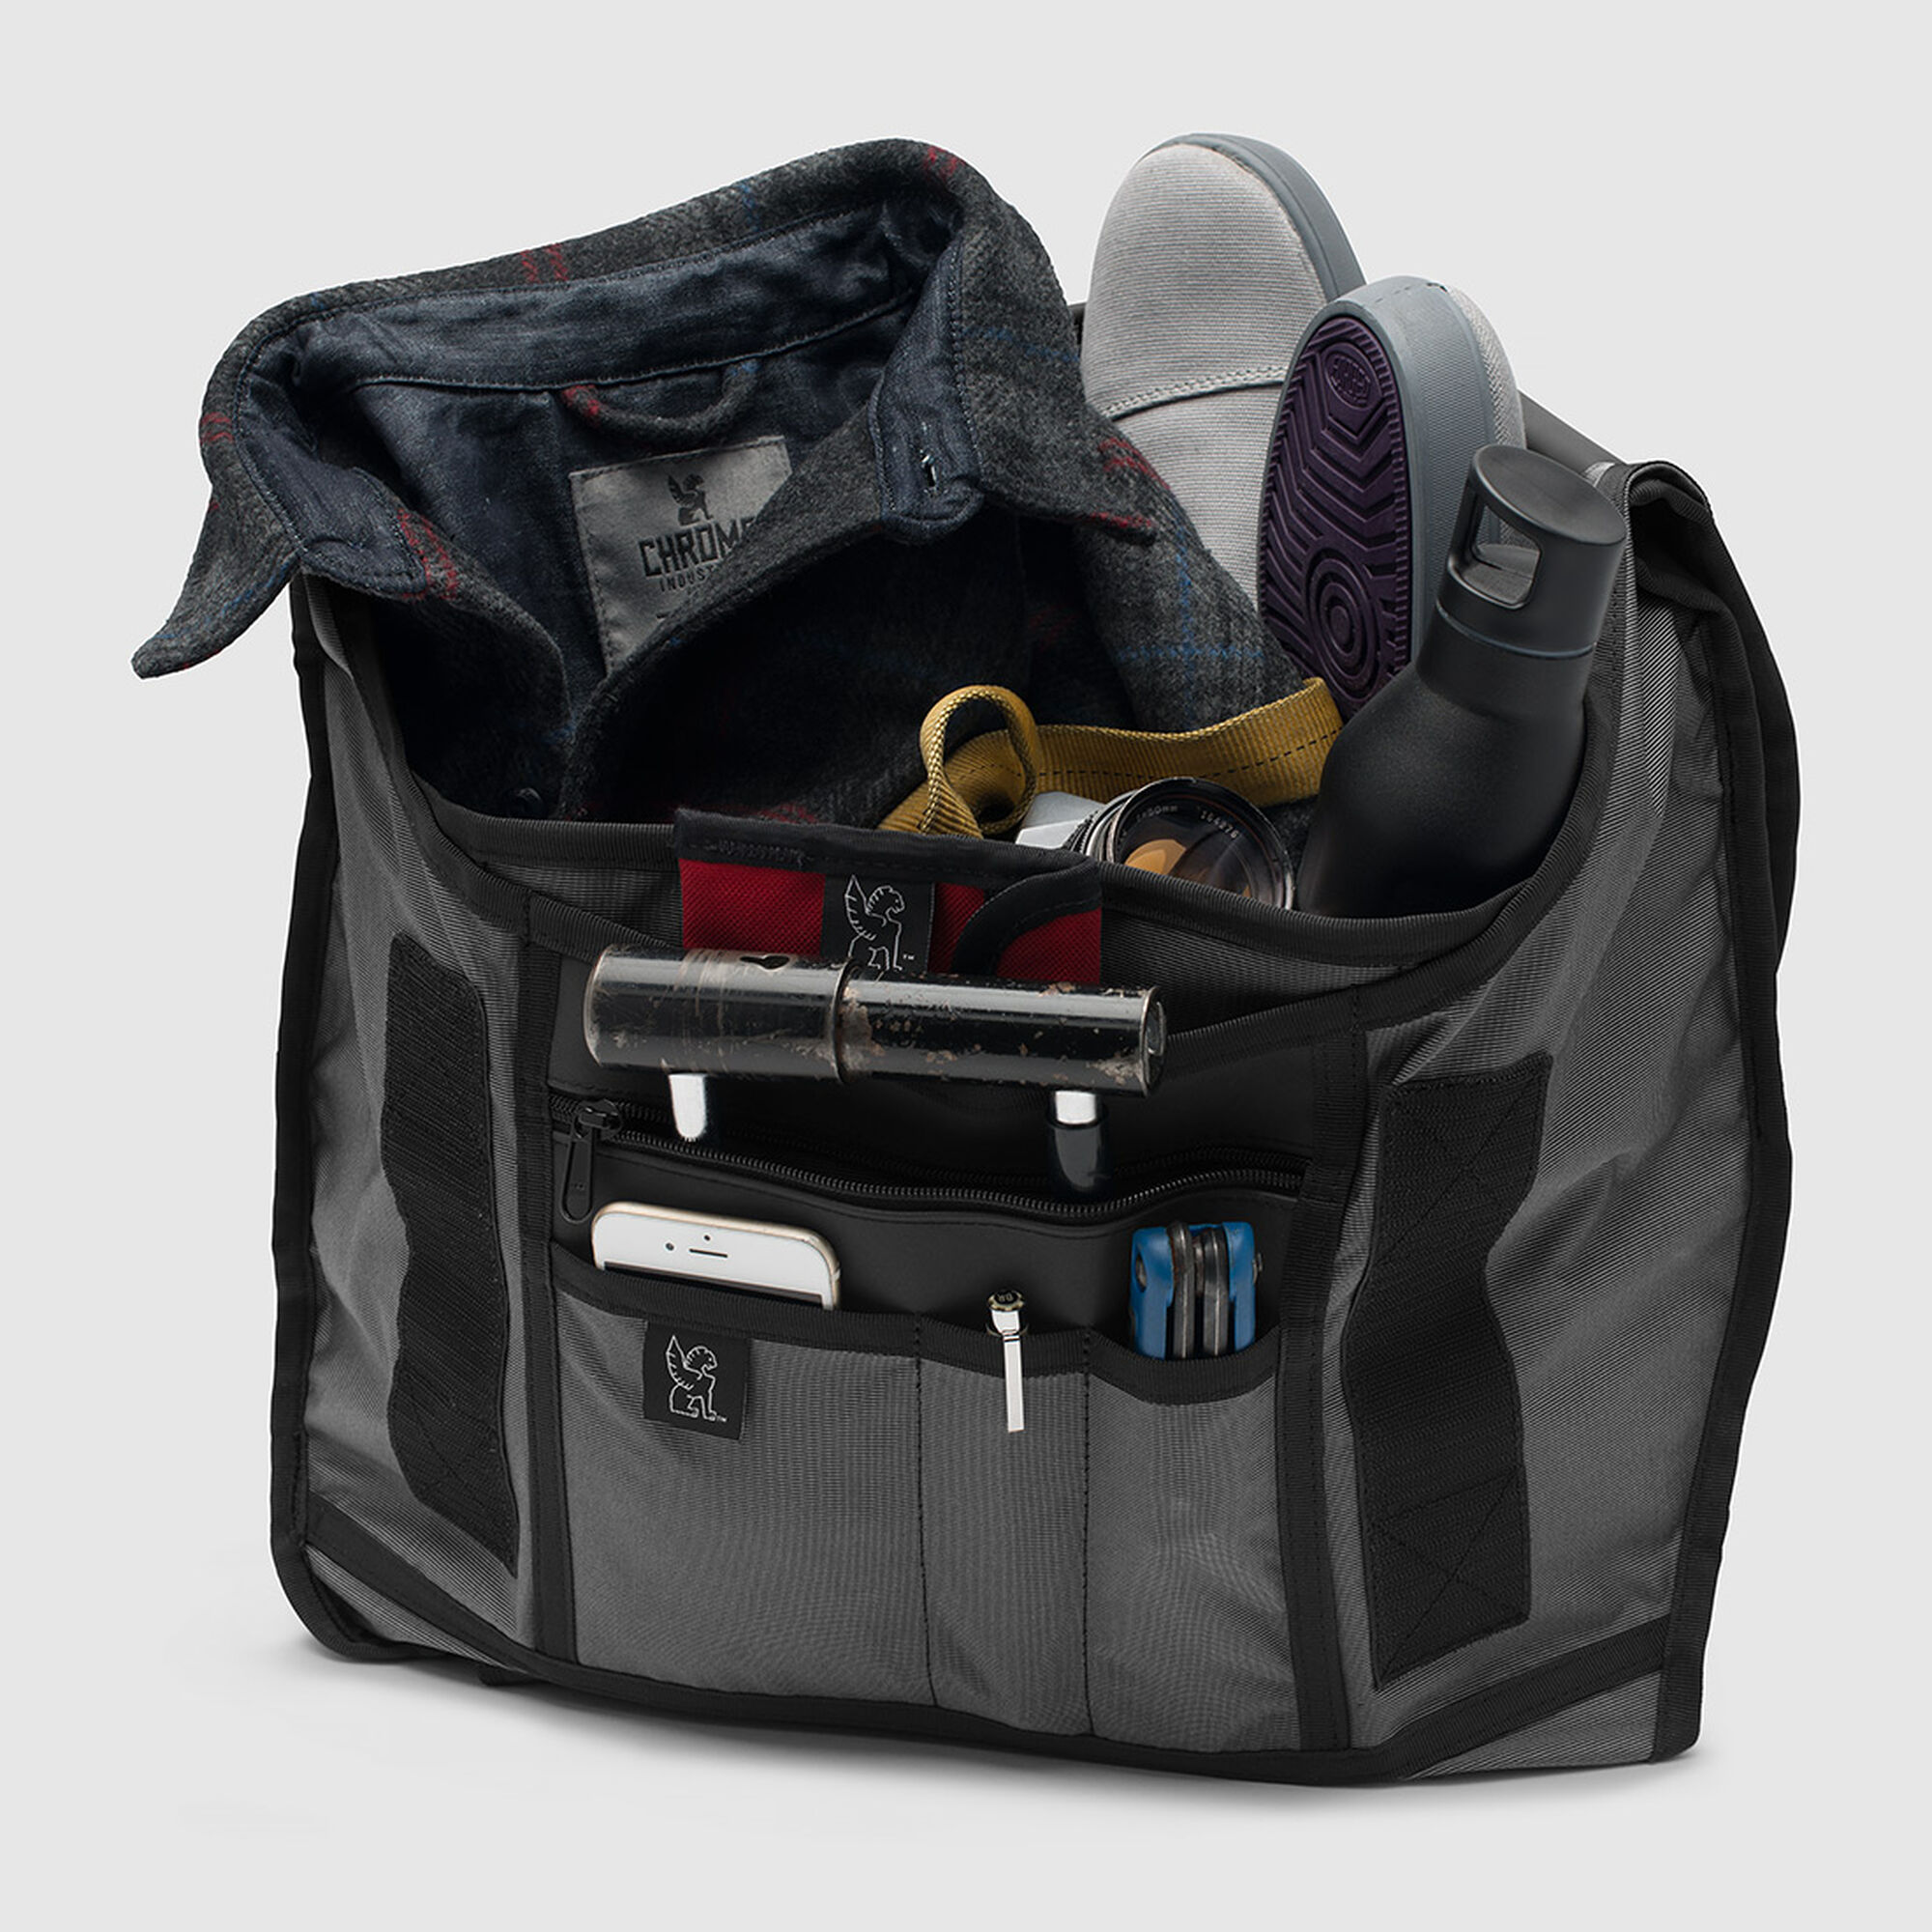 The Welterweight Citizen Messenger - Fits laptops up to 17